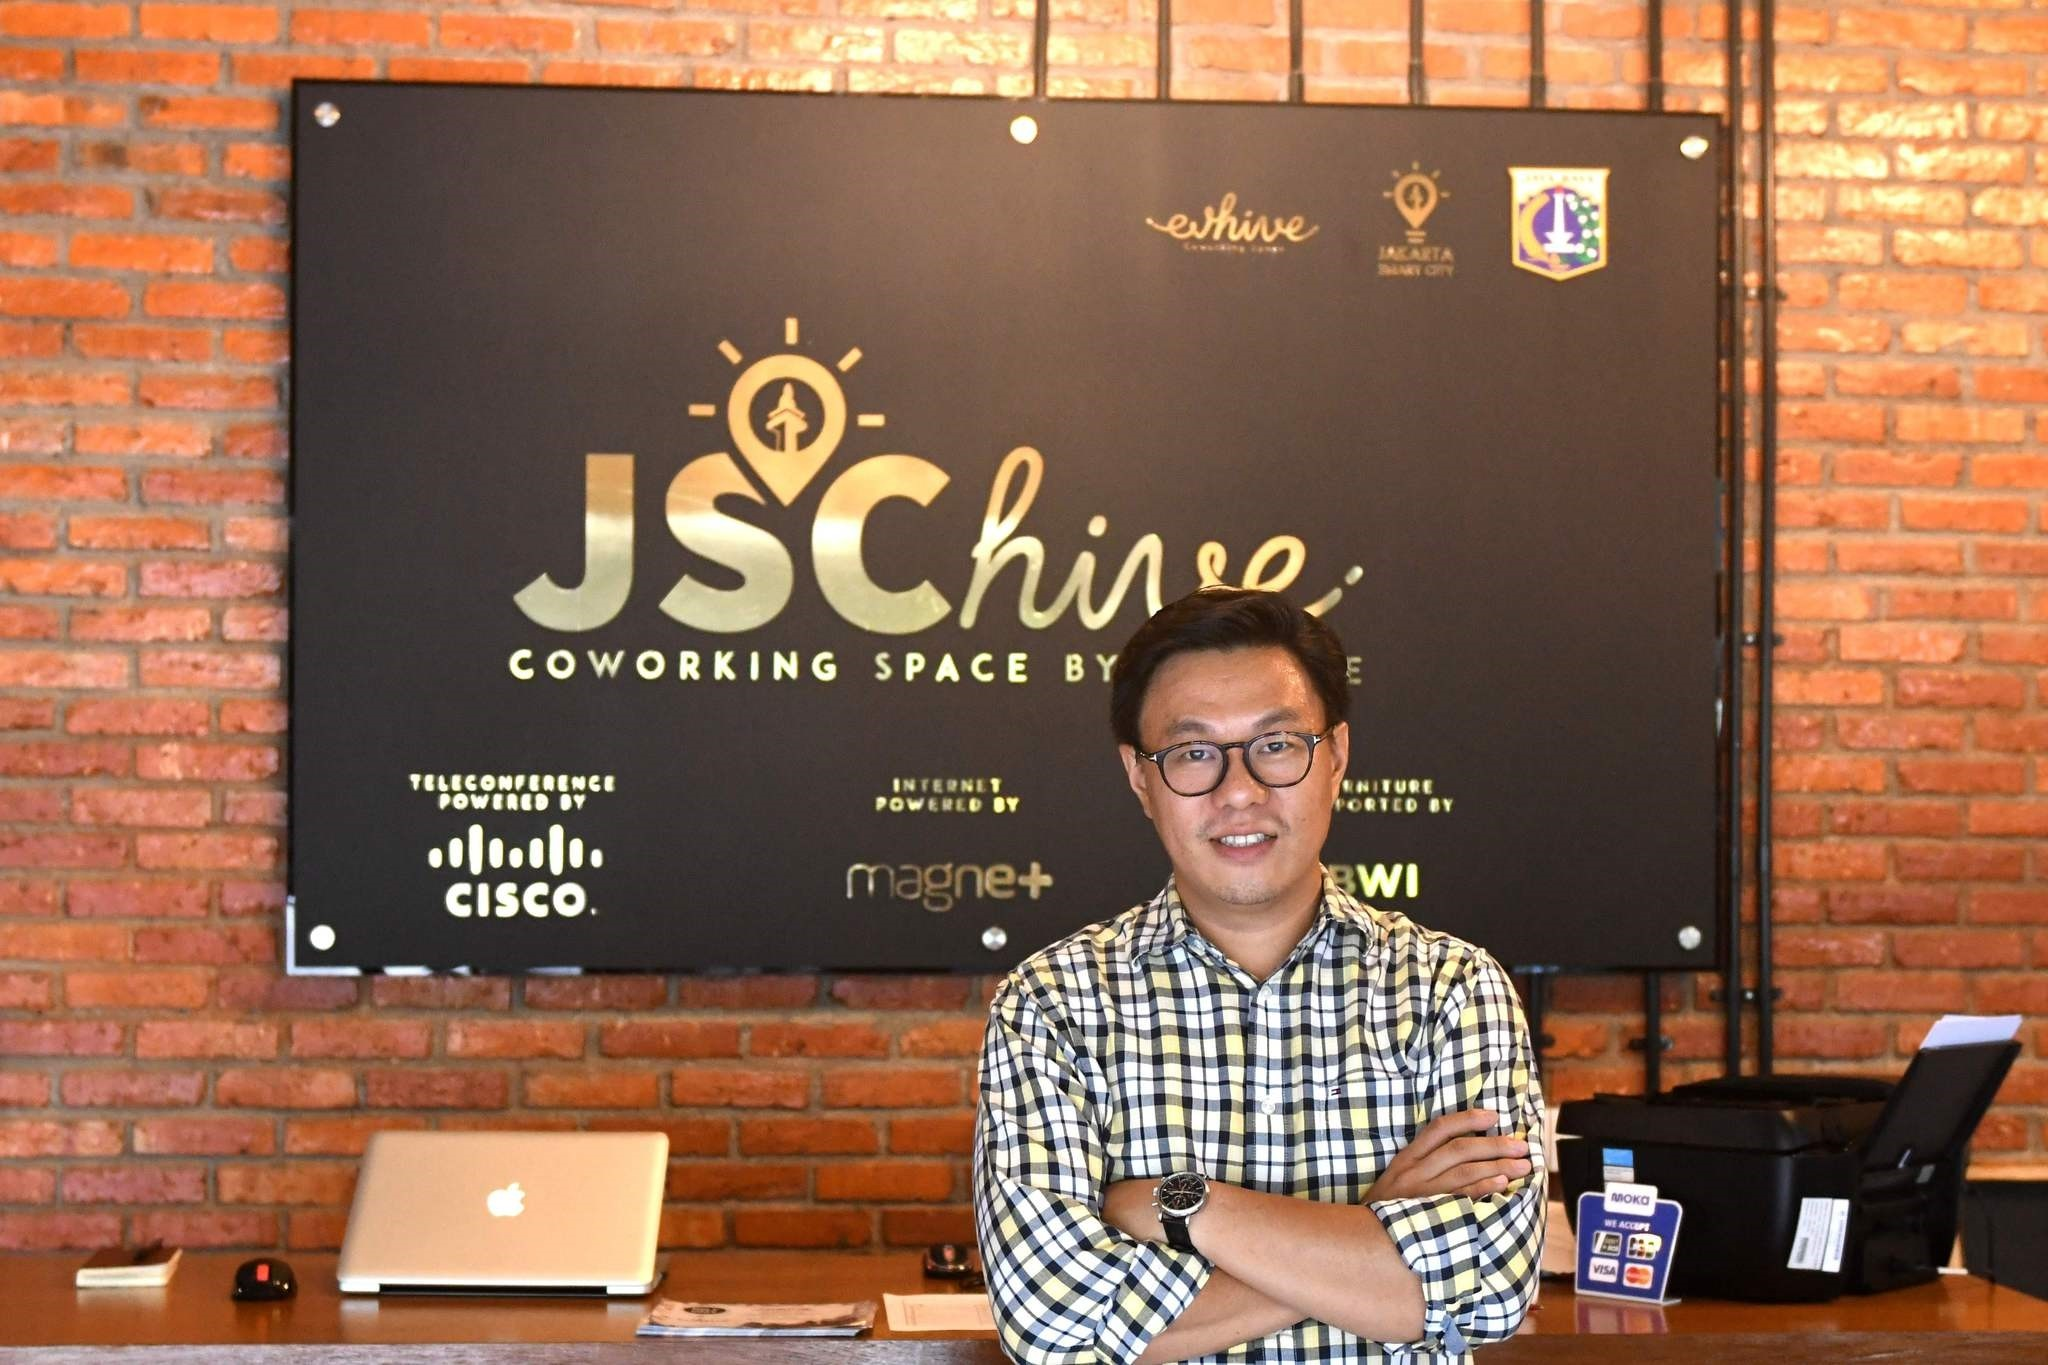 Willson Cuaca, one of the co-owners of the EV-Hive event space, a co-working space, in Jakarta.